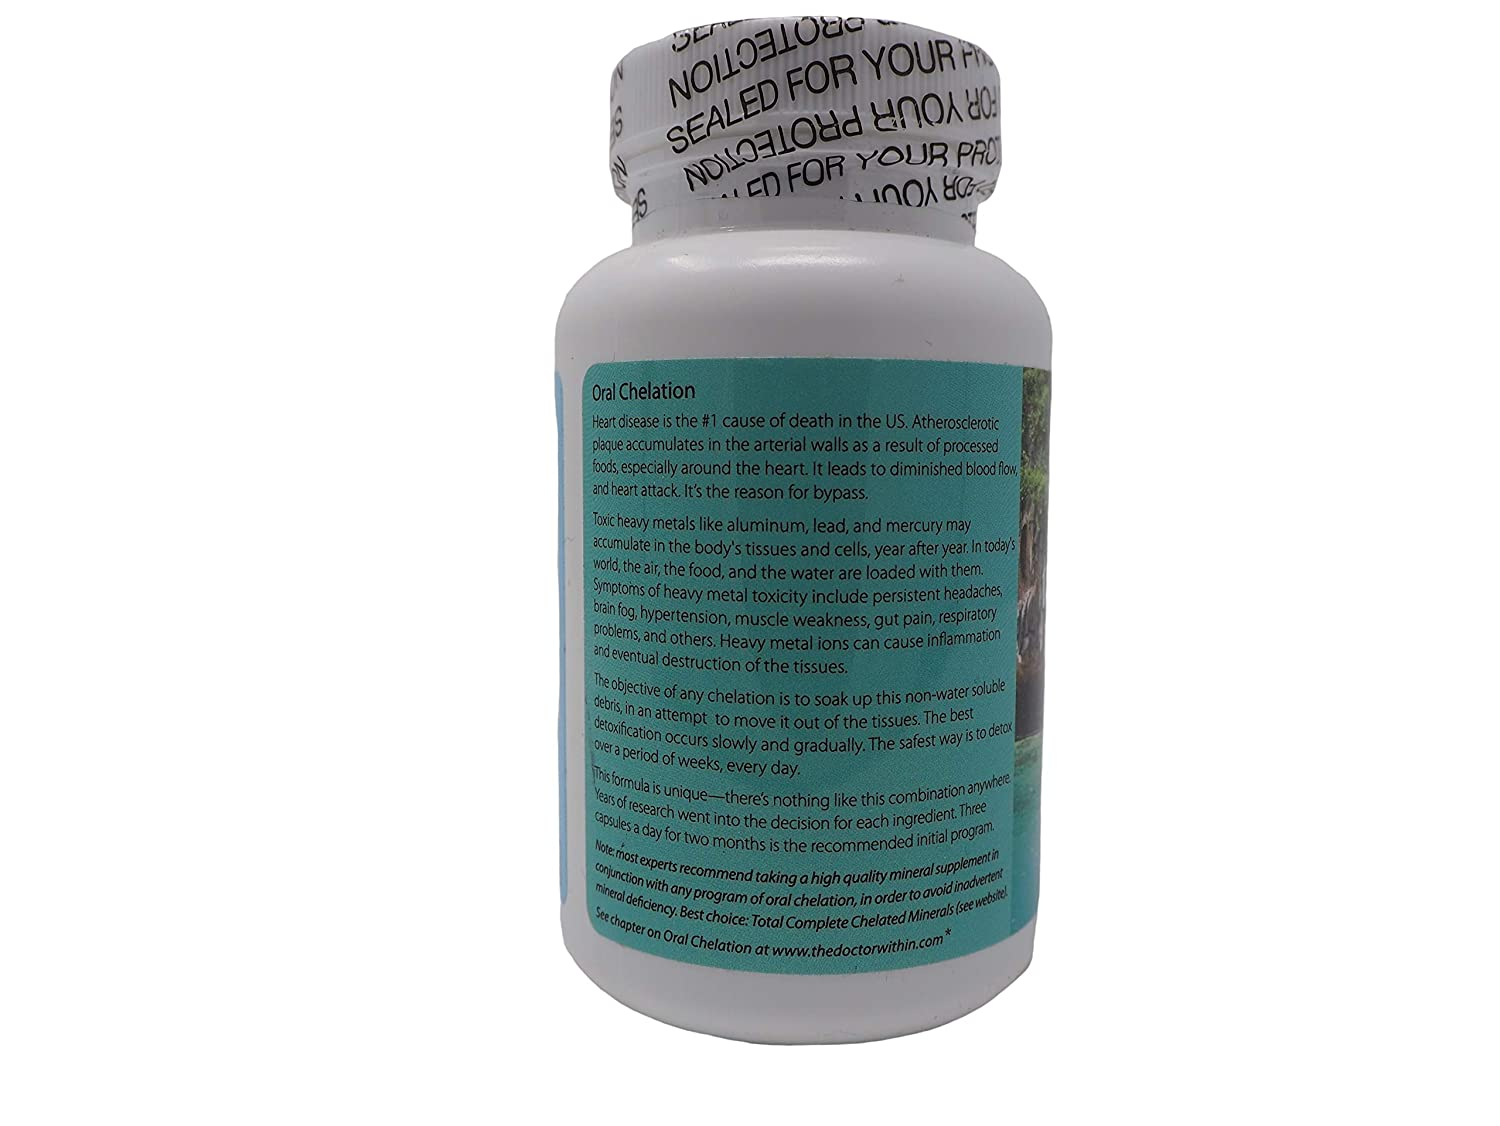 Amazon com: The Doctor Within - Oral Chelation - 90 Capsules: Health